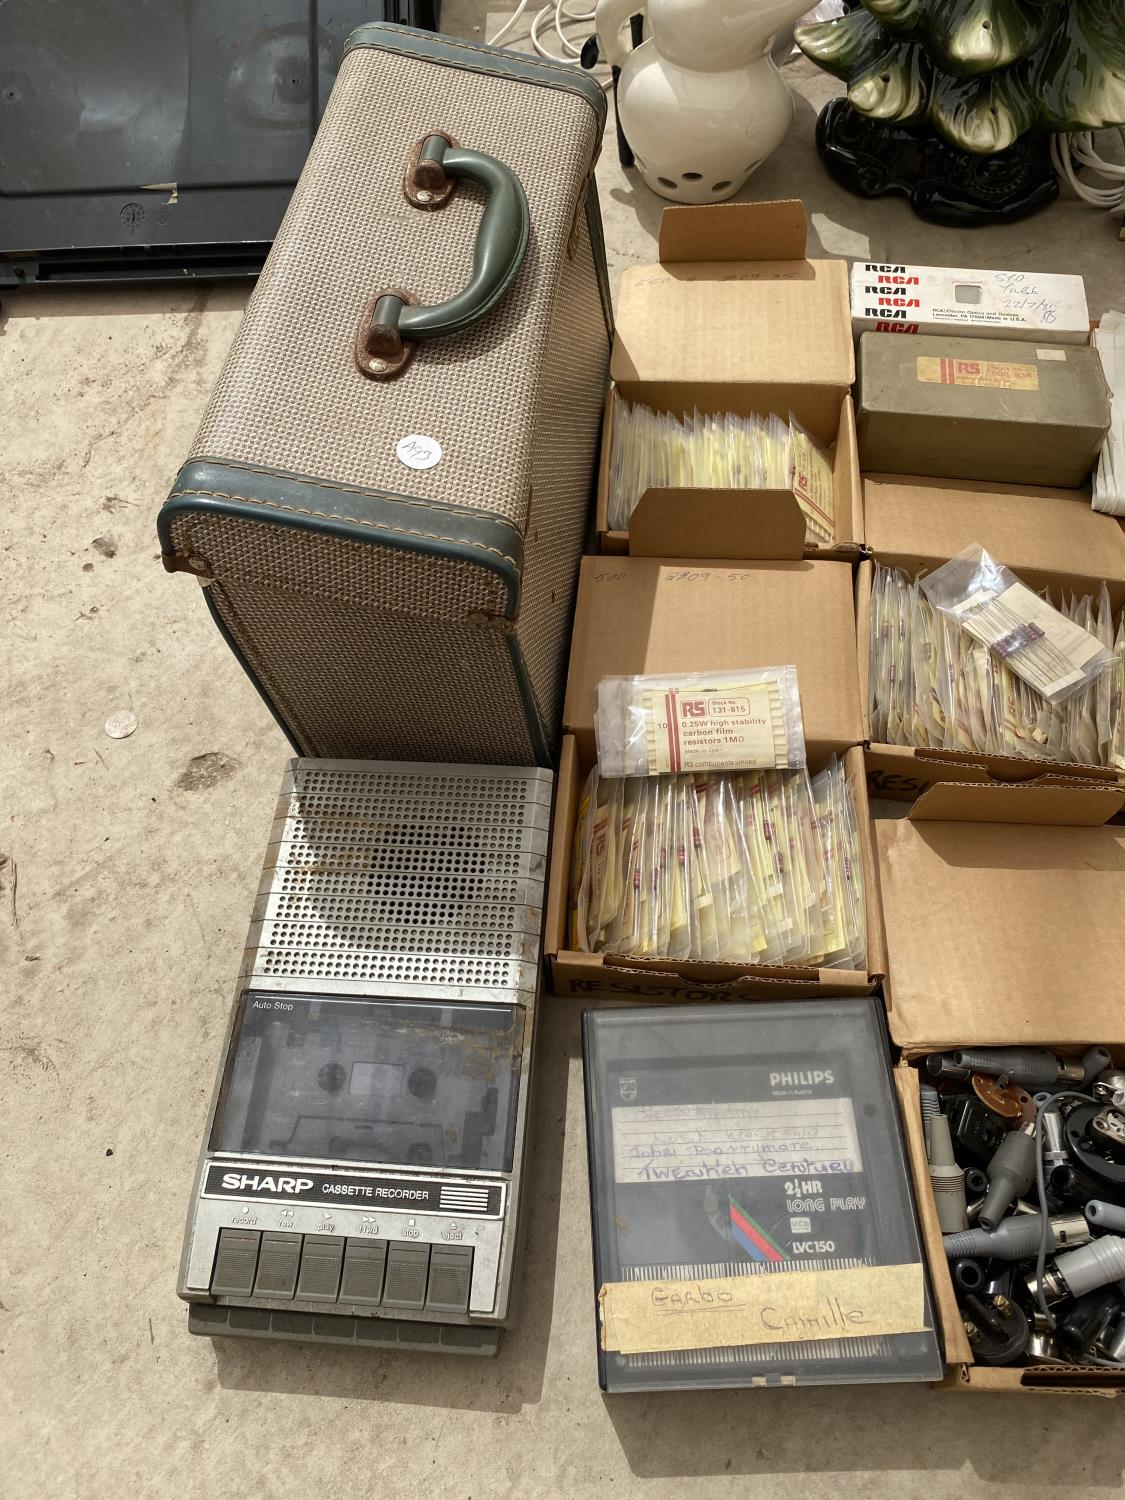 AN ASSORTMENT OF ELECTRICAL ITEMS TO INCLUDE FUSES, ARIELS, SPEAKERS AND A SLIDE PROJECTOR - Image 4 of 4